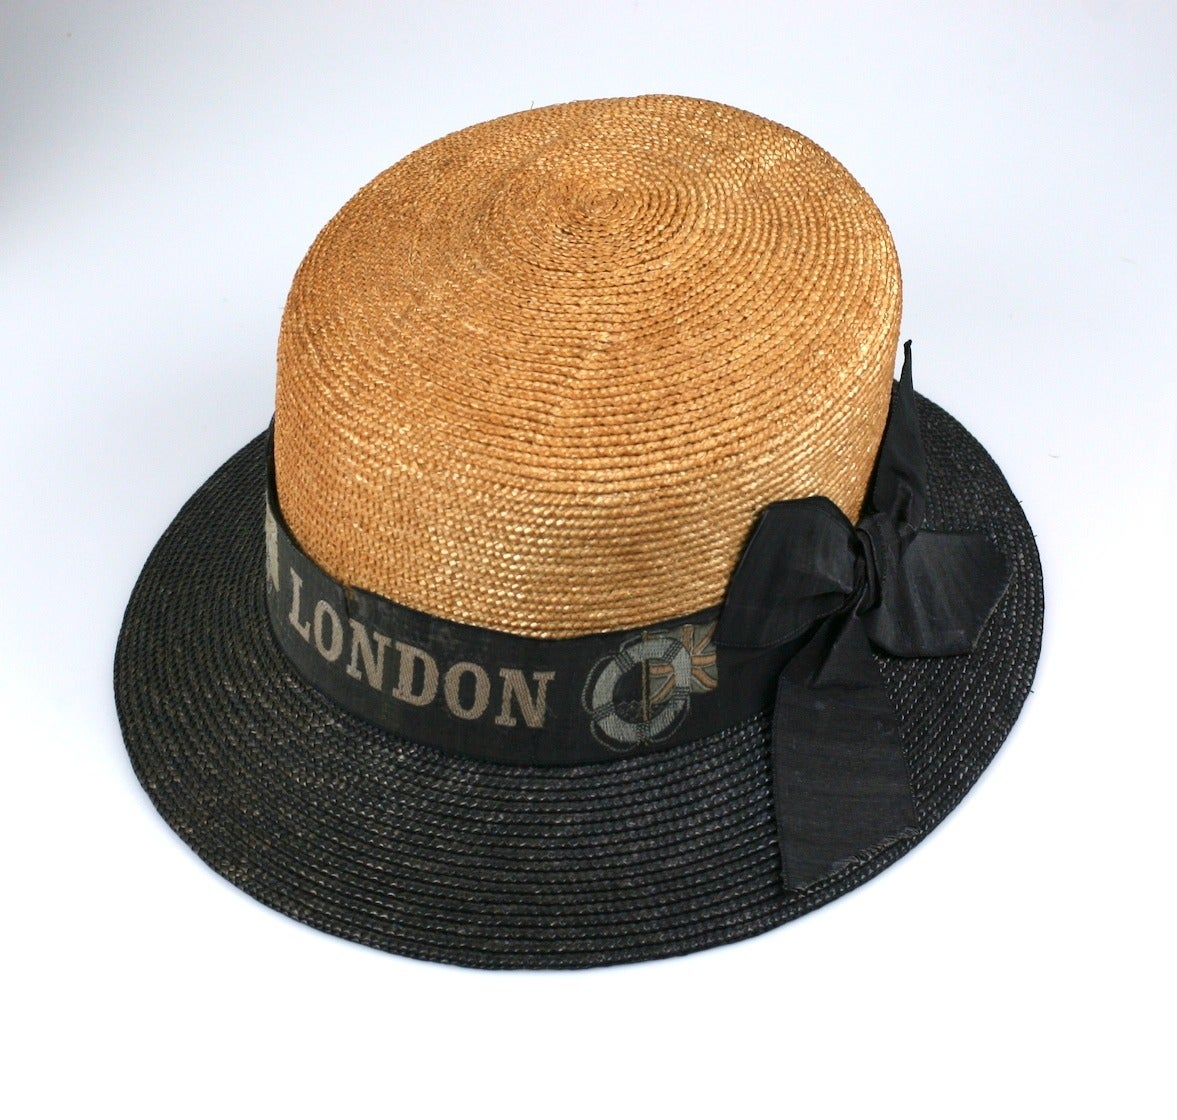 Women's or Men's Early 2 Toned Straw Hat,